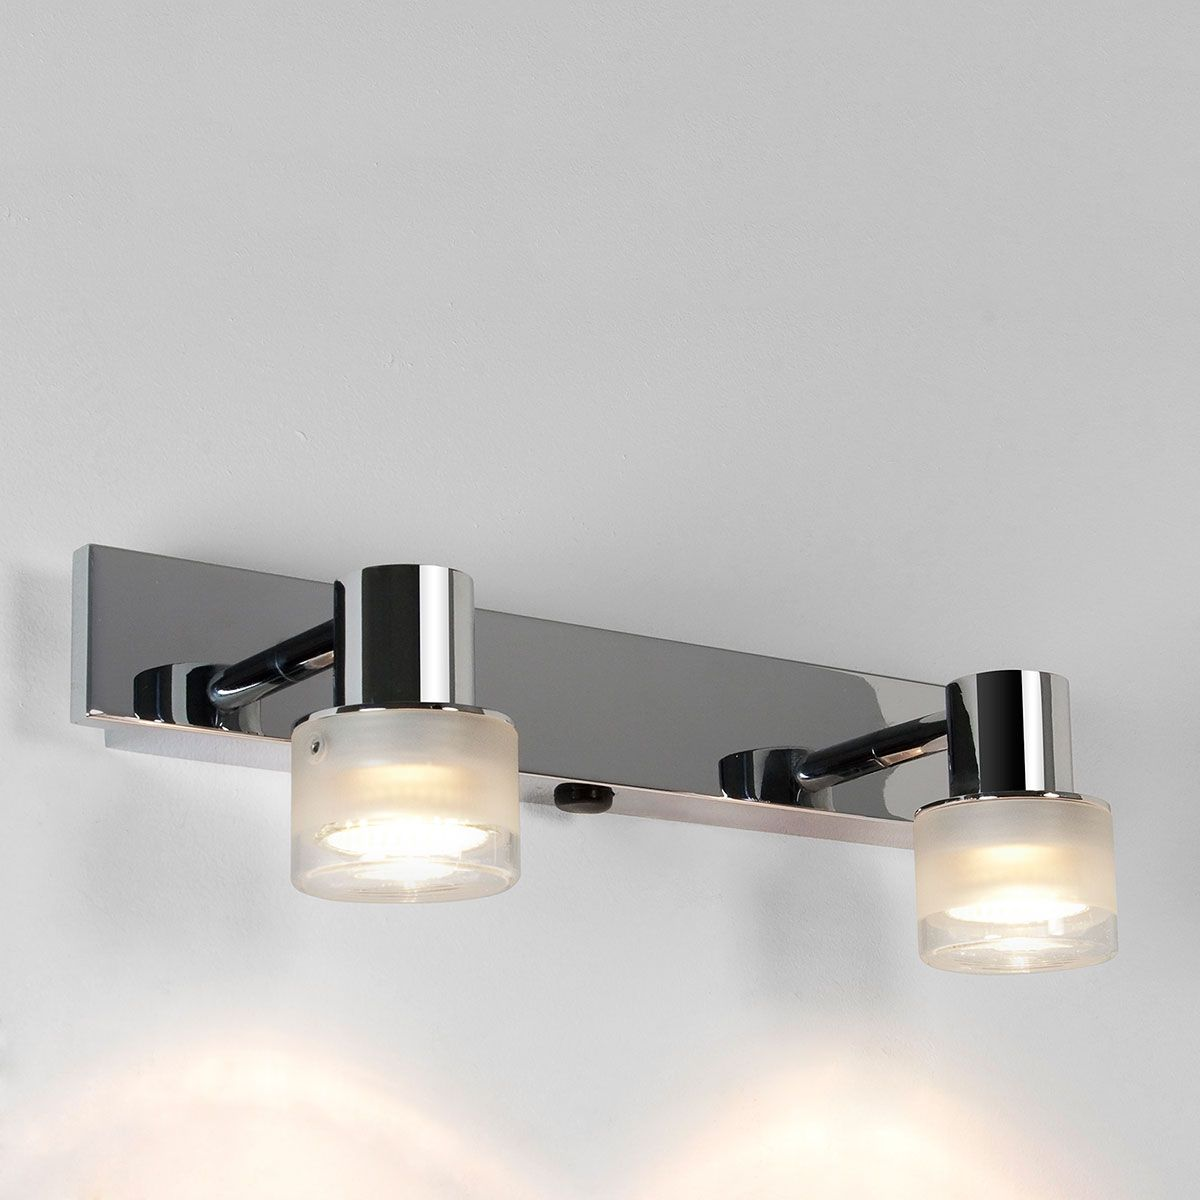 The Tokai Twin Bar Is An Rated Bathroom Spotlight Suitable For Zone Polished Chrome Finish And A Glass Shade